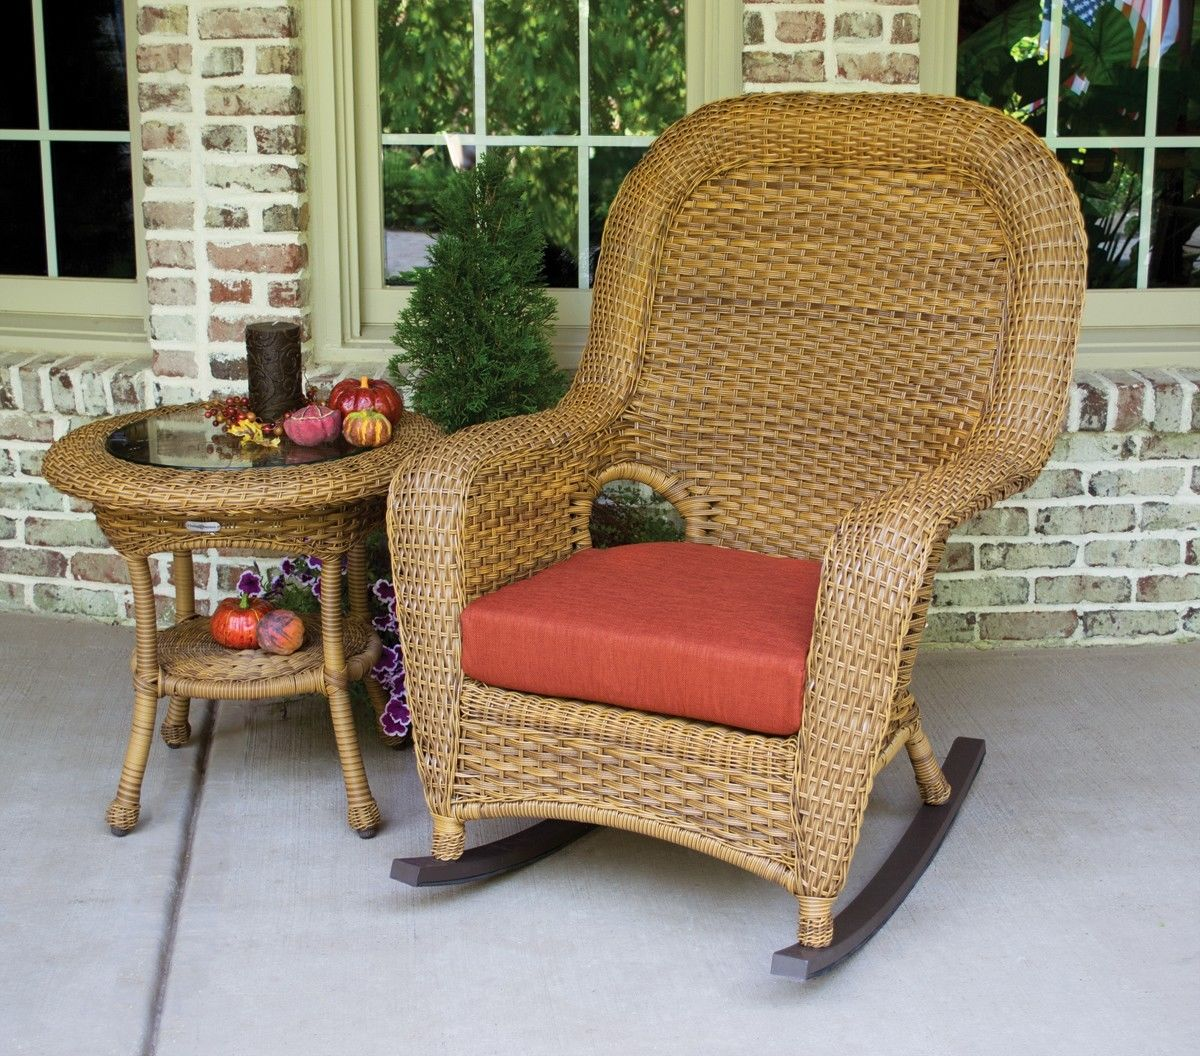 #77 - Outdoor Patio Garden Furniture Mojave Resin Wicker Rocking Chair & Table Bundle in Rave Brick